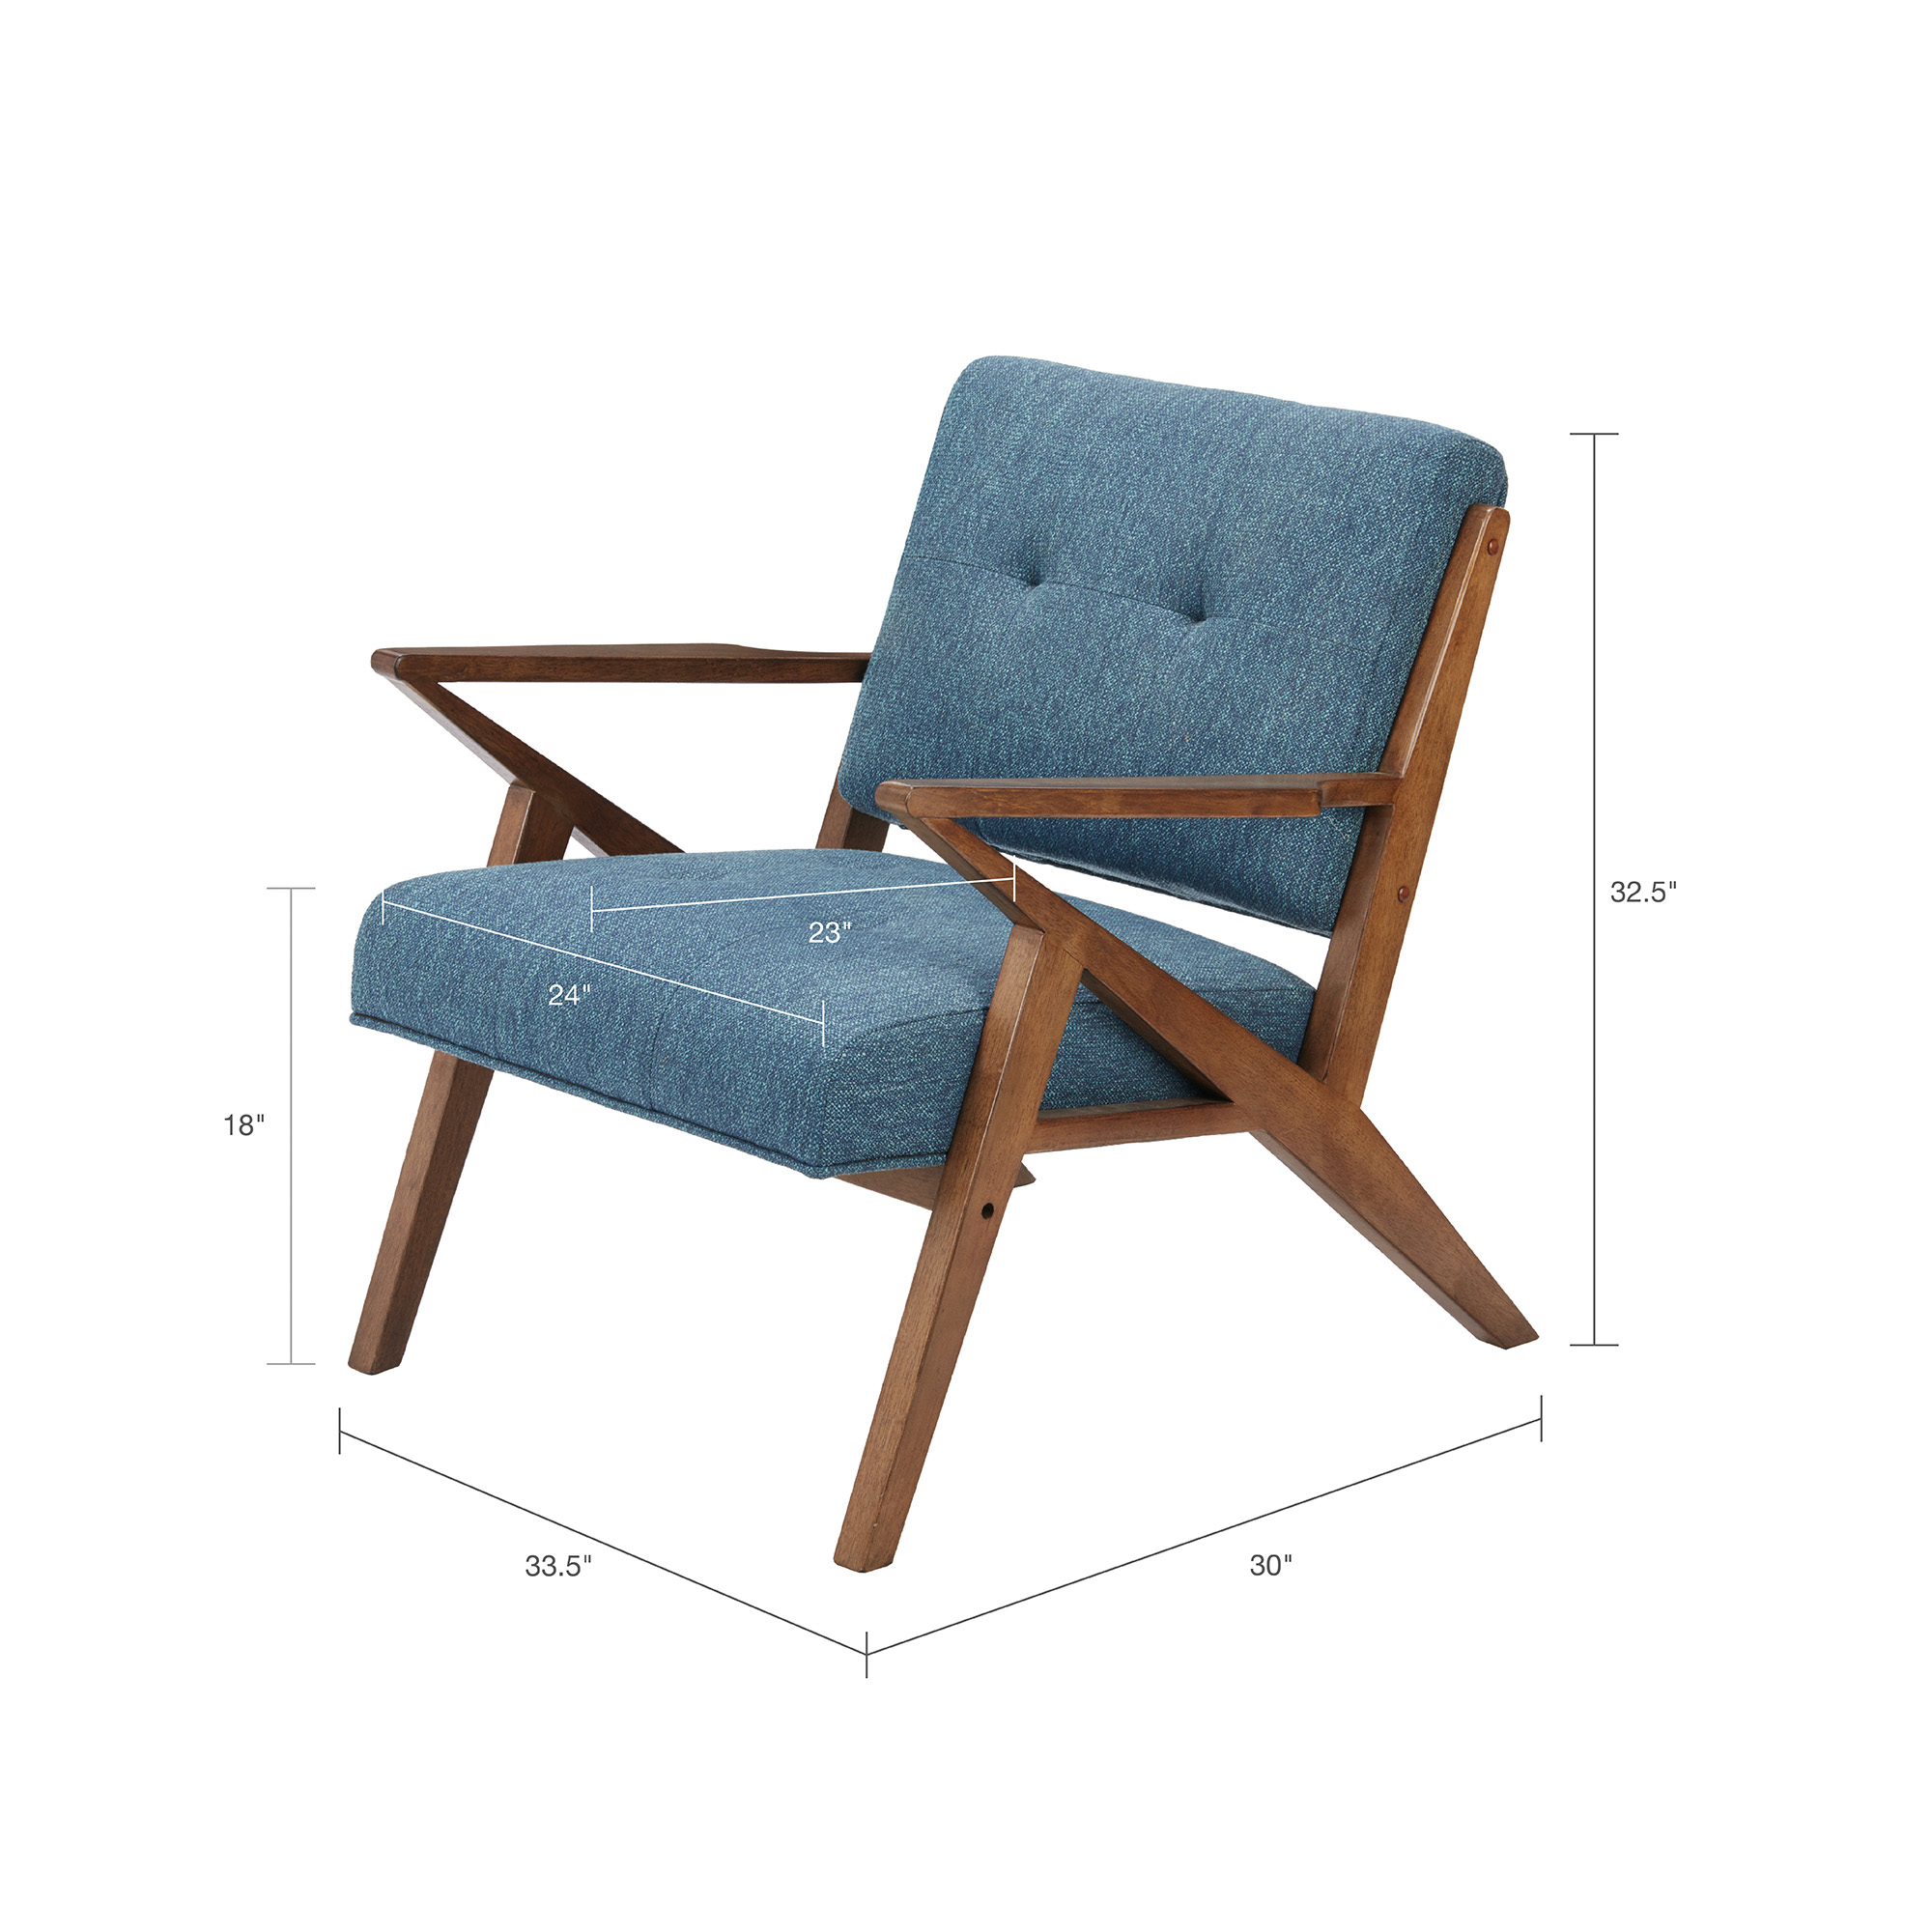 Tremendous Details About Ink Ivy Rocket Lounge Alphanode Cool Chair Designs And Ideas Alphanodeonline